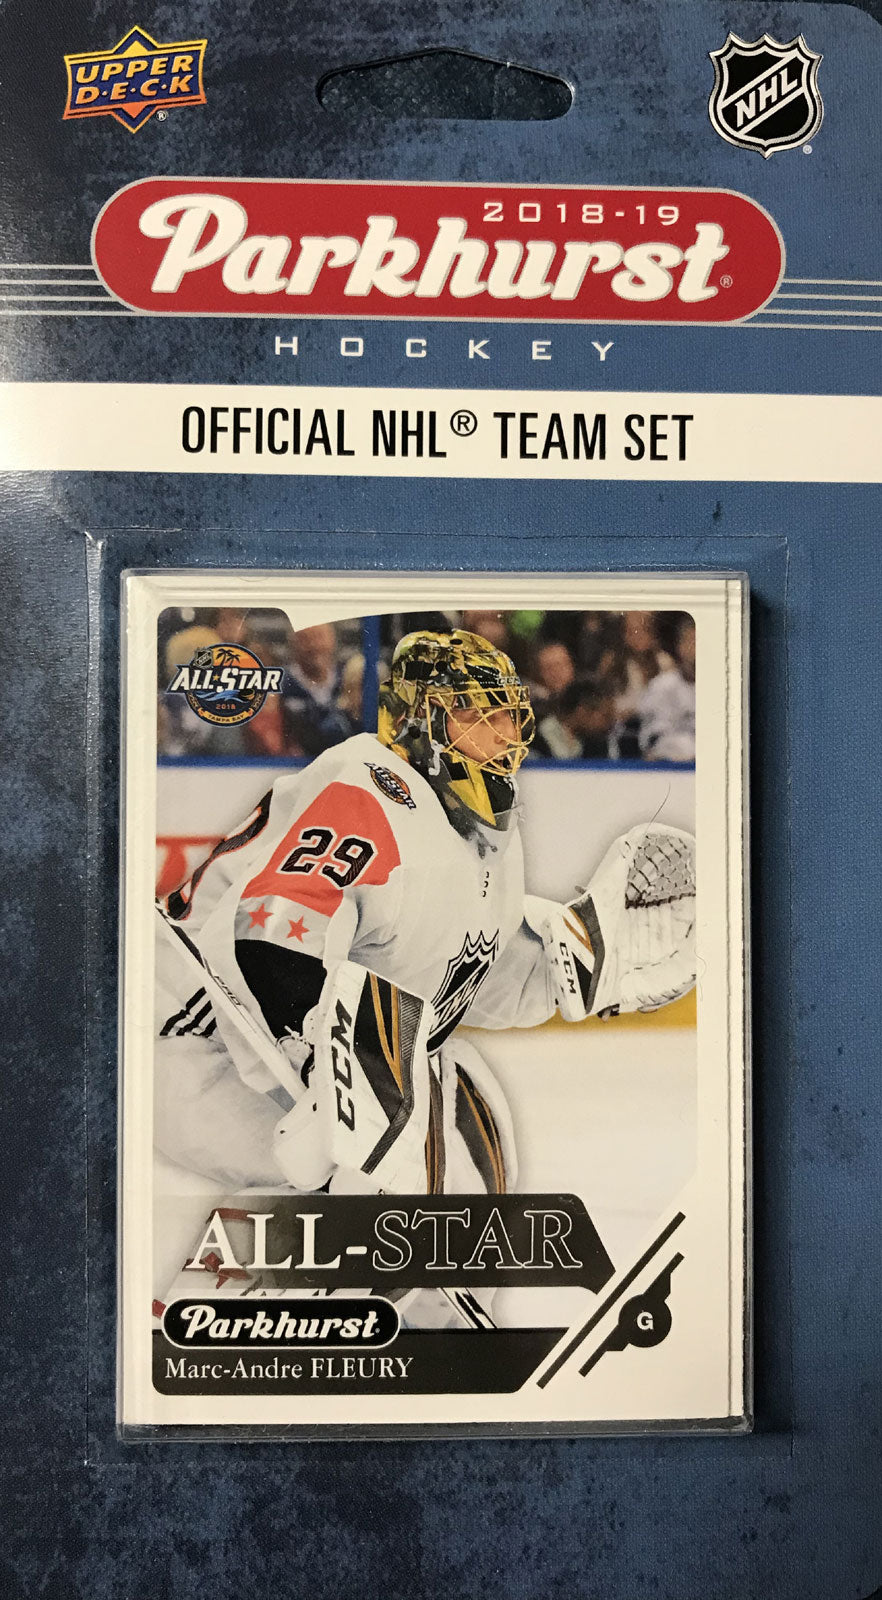 Western Division Official All-Star Series 2018 2019 Upper Deck PARKHURST Factory Sealed Team Set